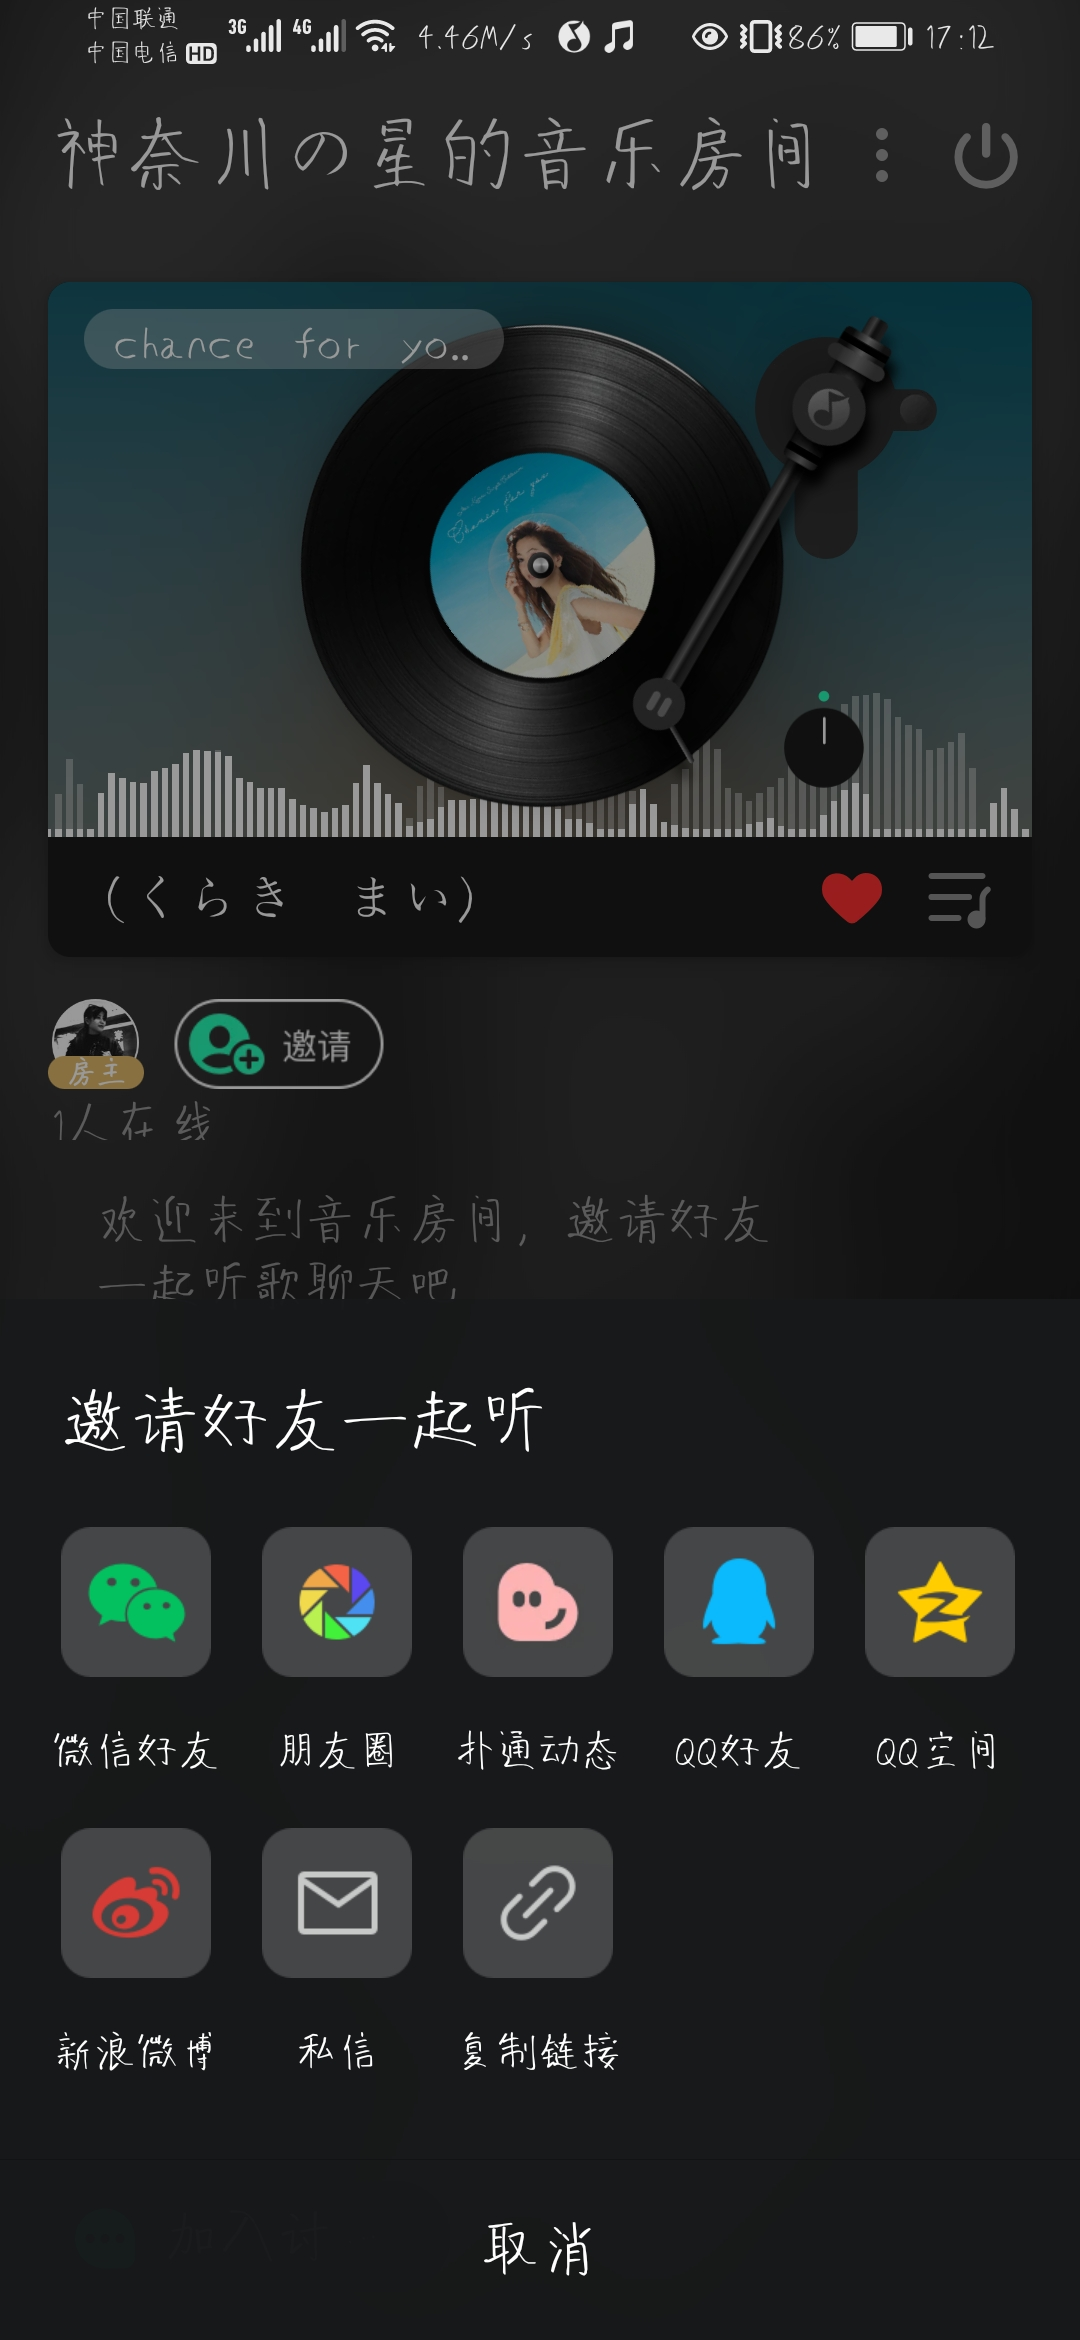 Screenshot_20210202_171224_com.tencent.qqmusic.jpg